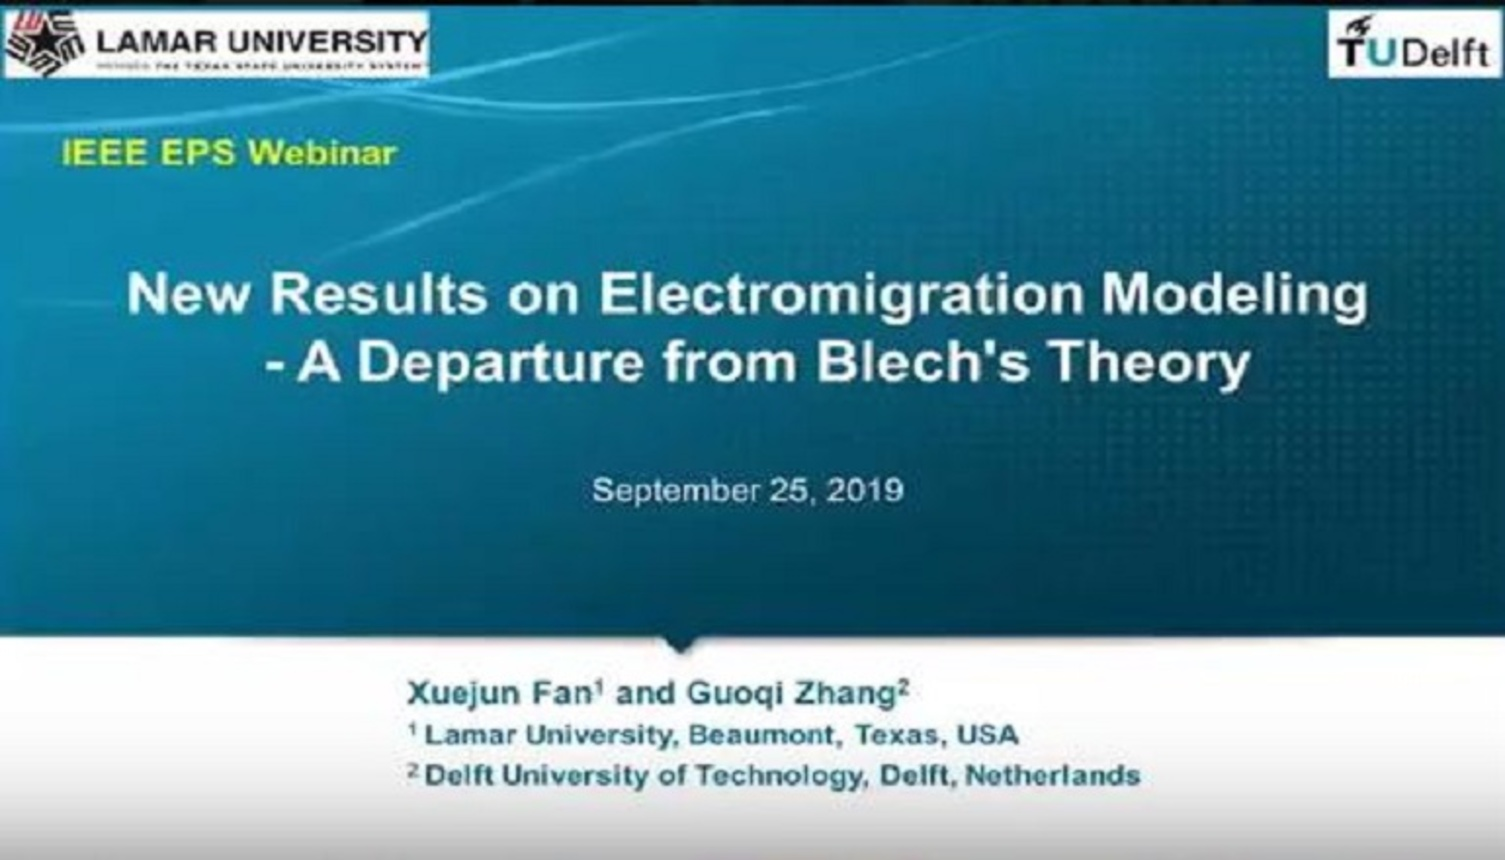 New Results on Electromigration Modeling - A Departure from Blech's Theory